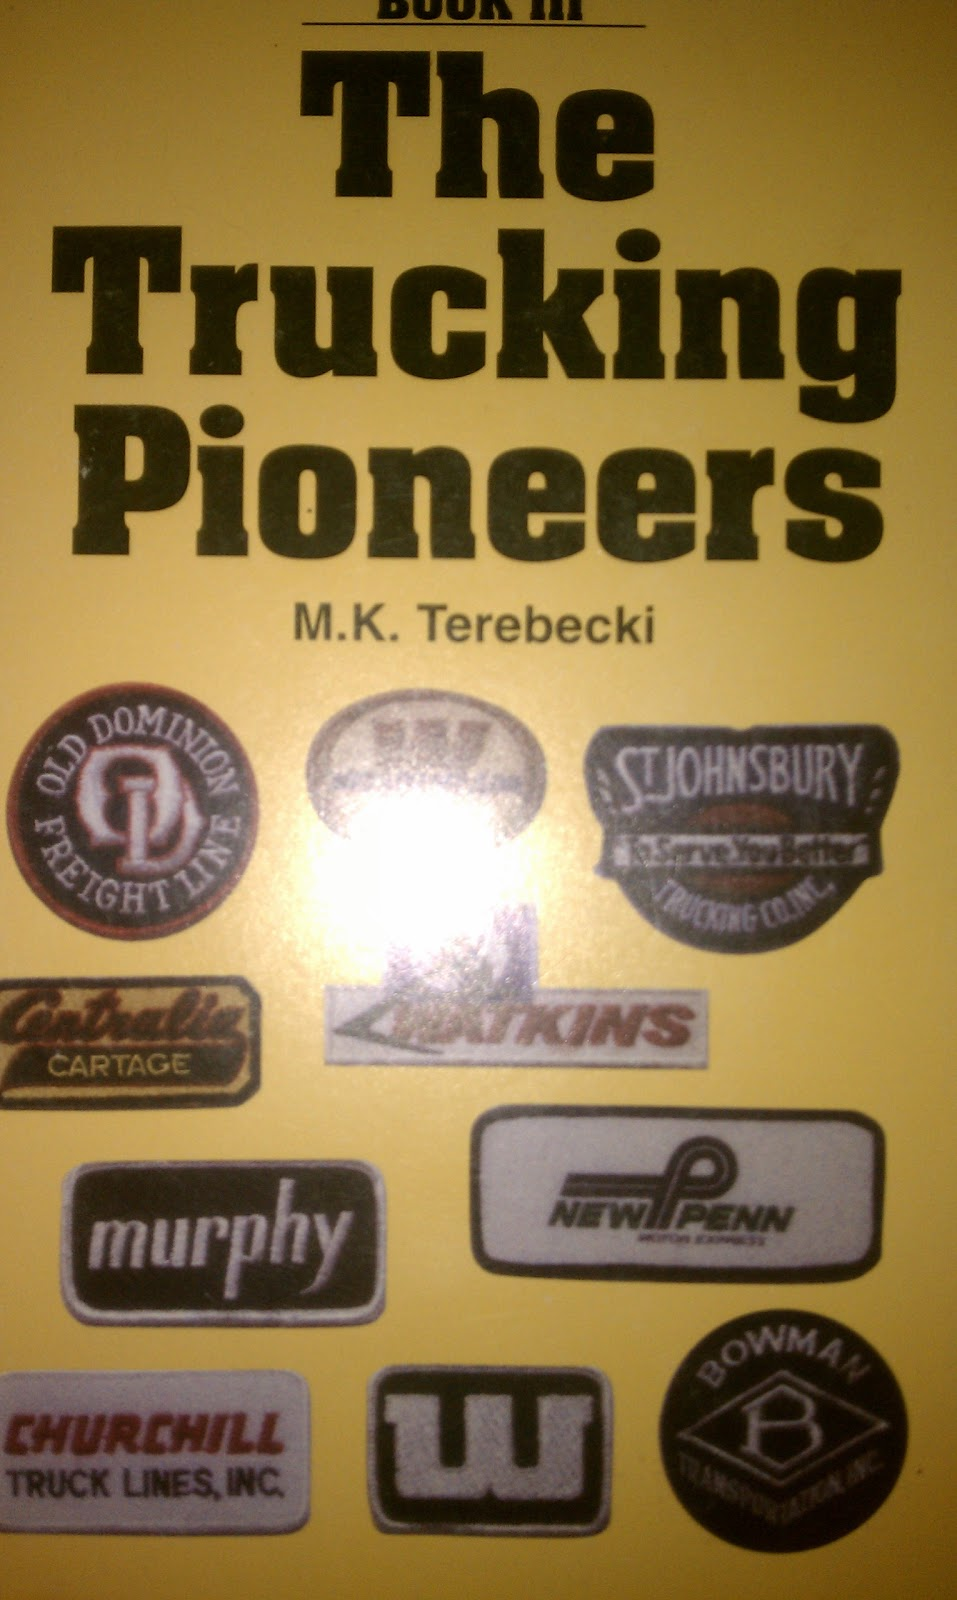 book music reviews and music  the trucking pioneers book iii v by m k terebecki